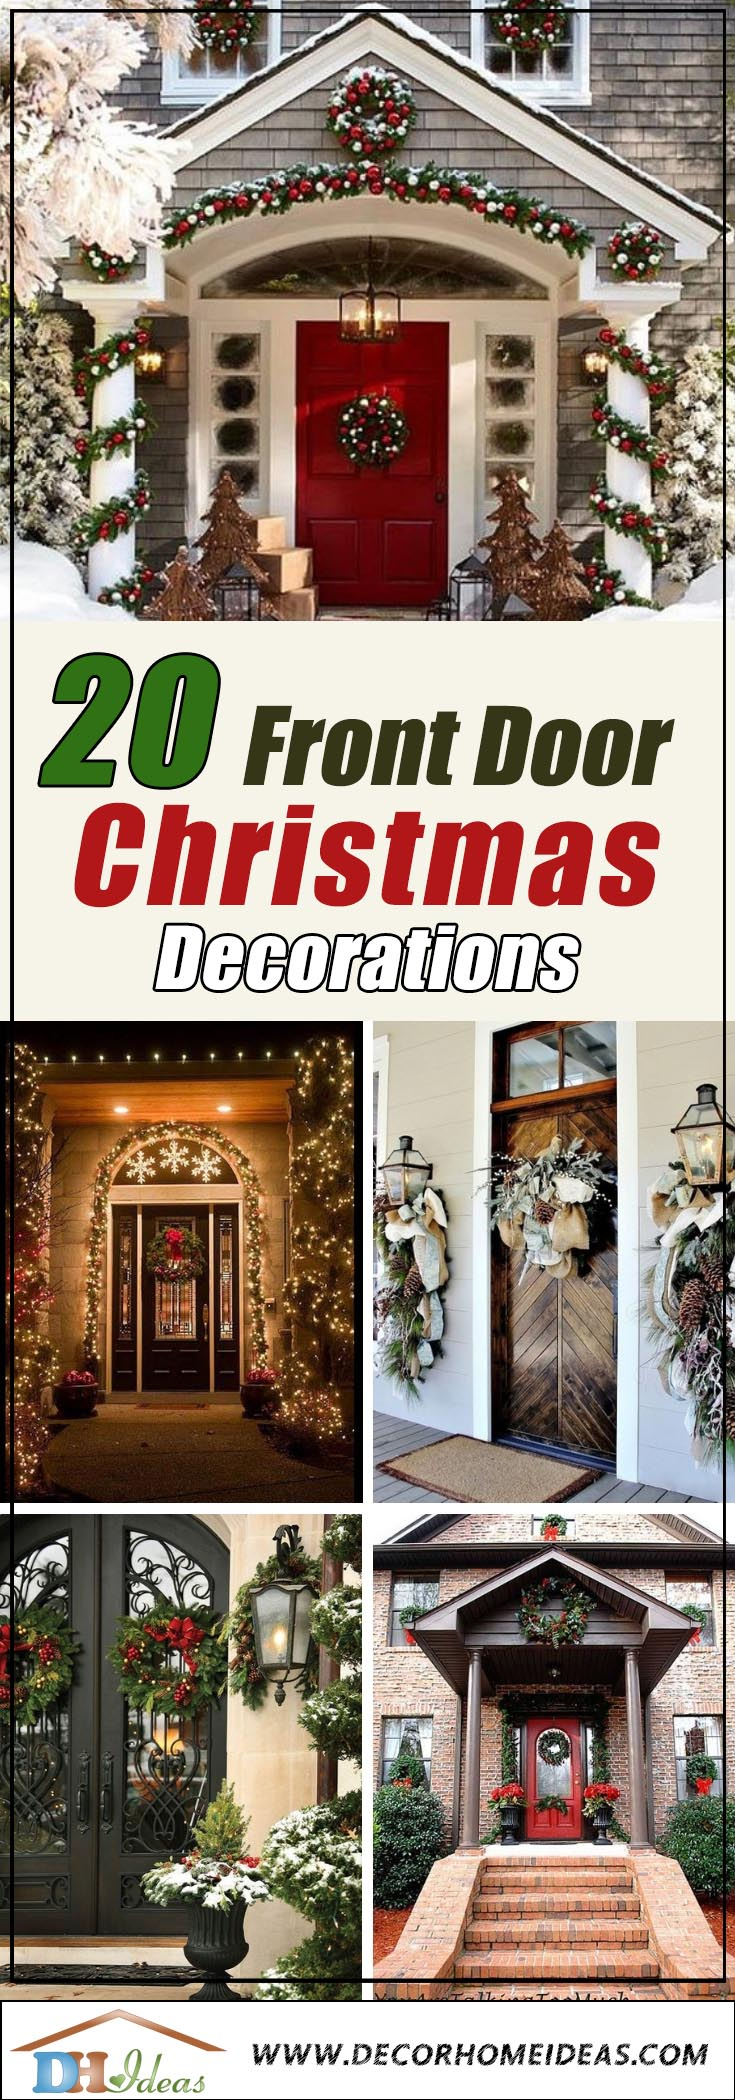 20 Most Inviting Christmas Front Door Decorations | Decor ...